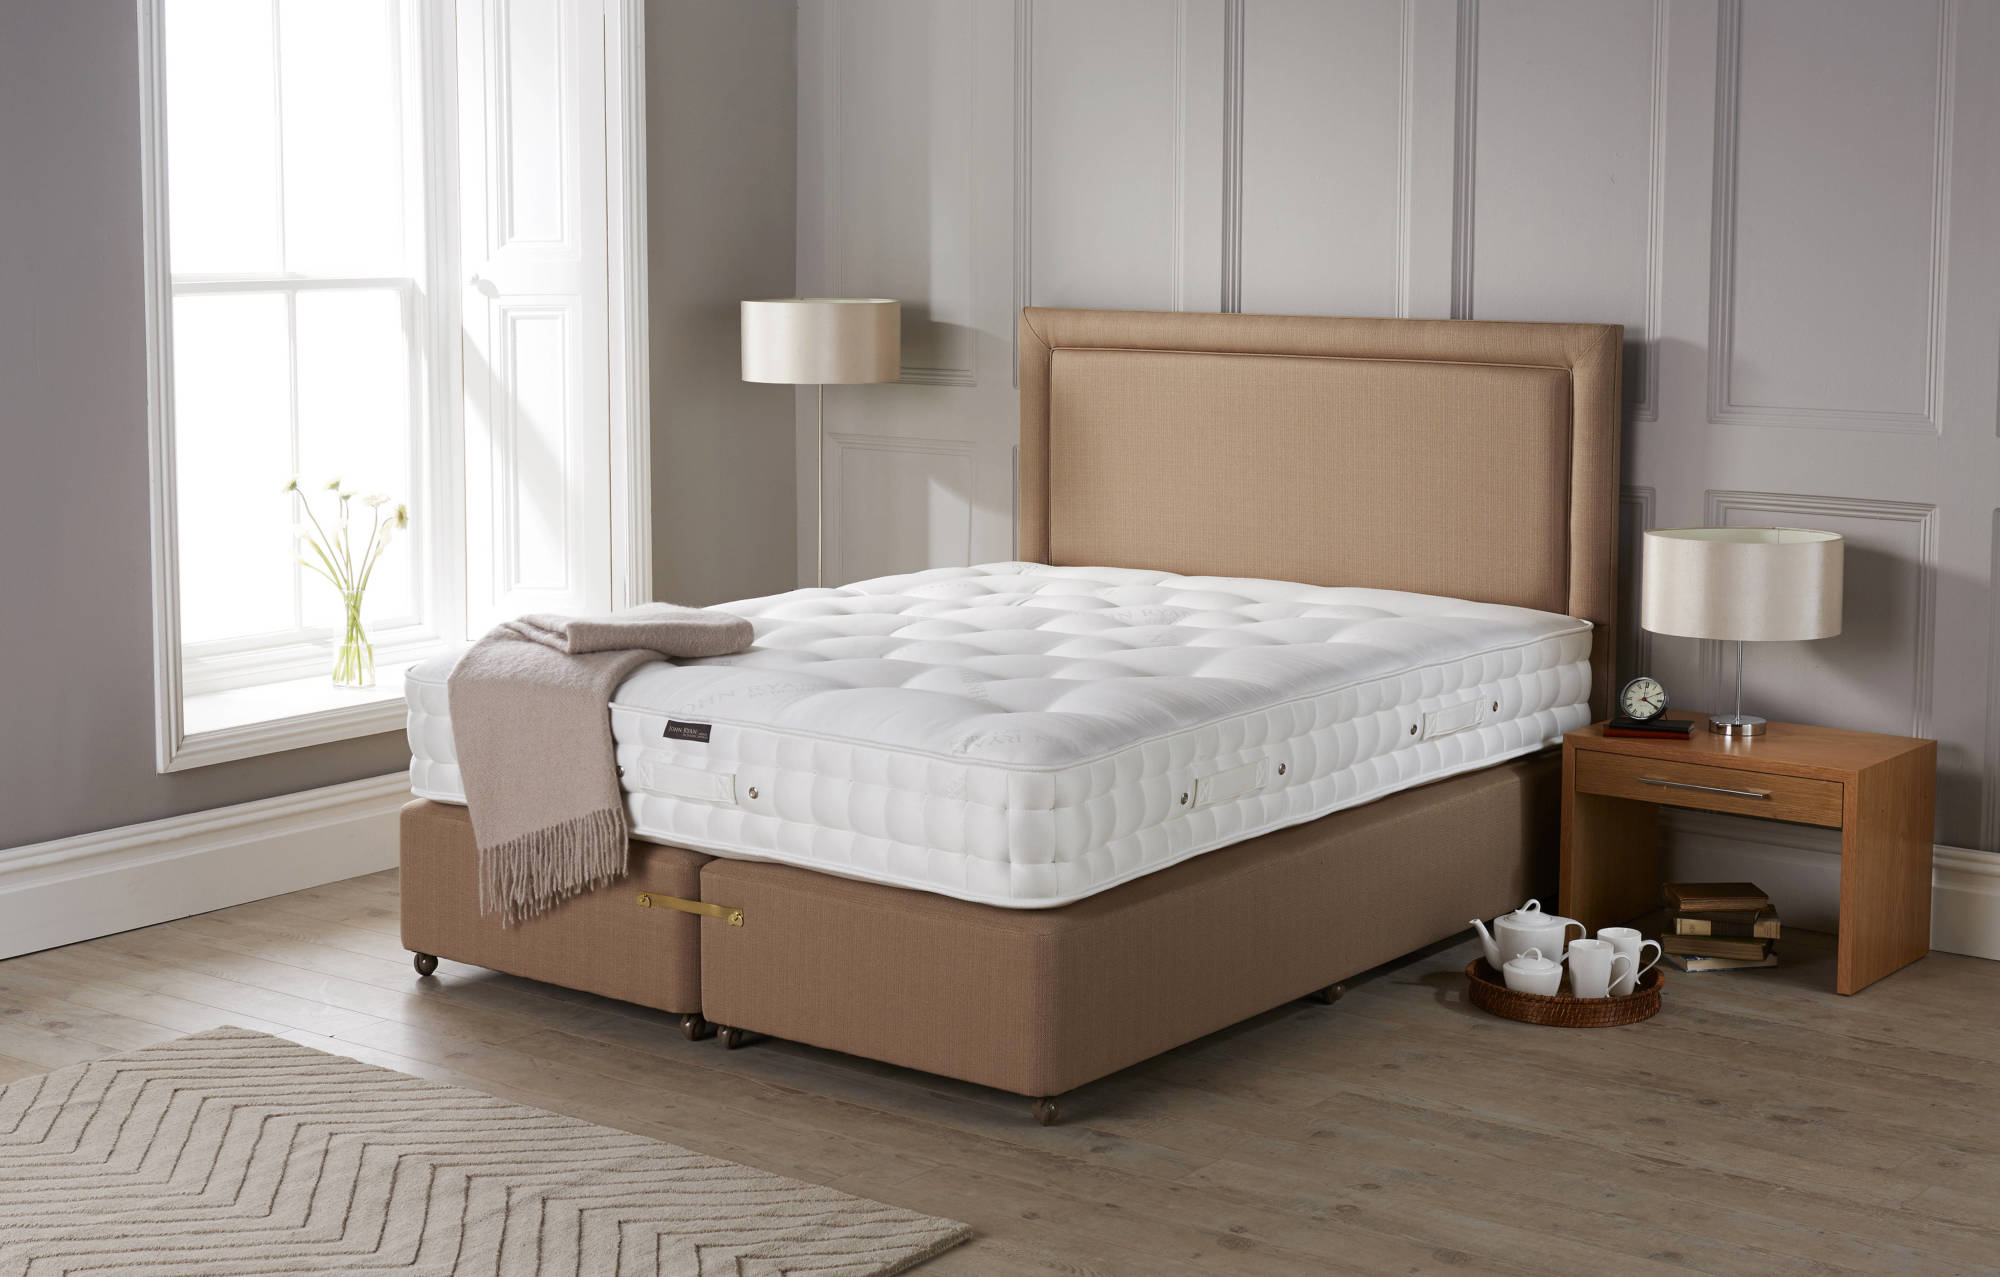 Artisan naturals pocket sprung mattress